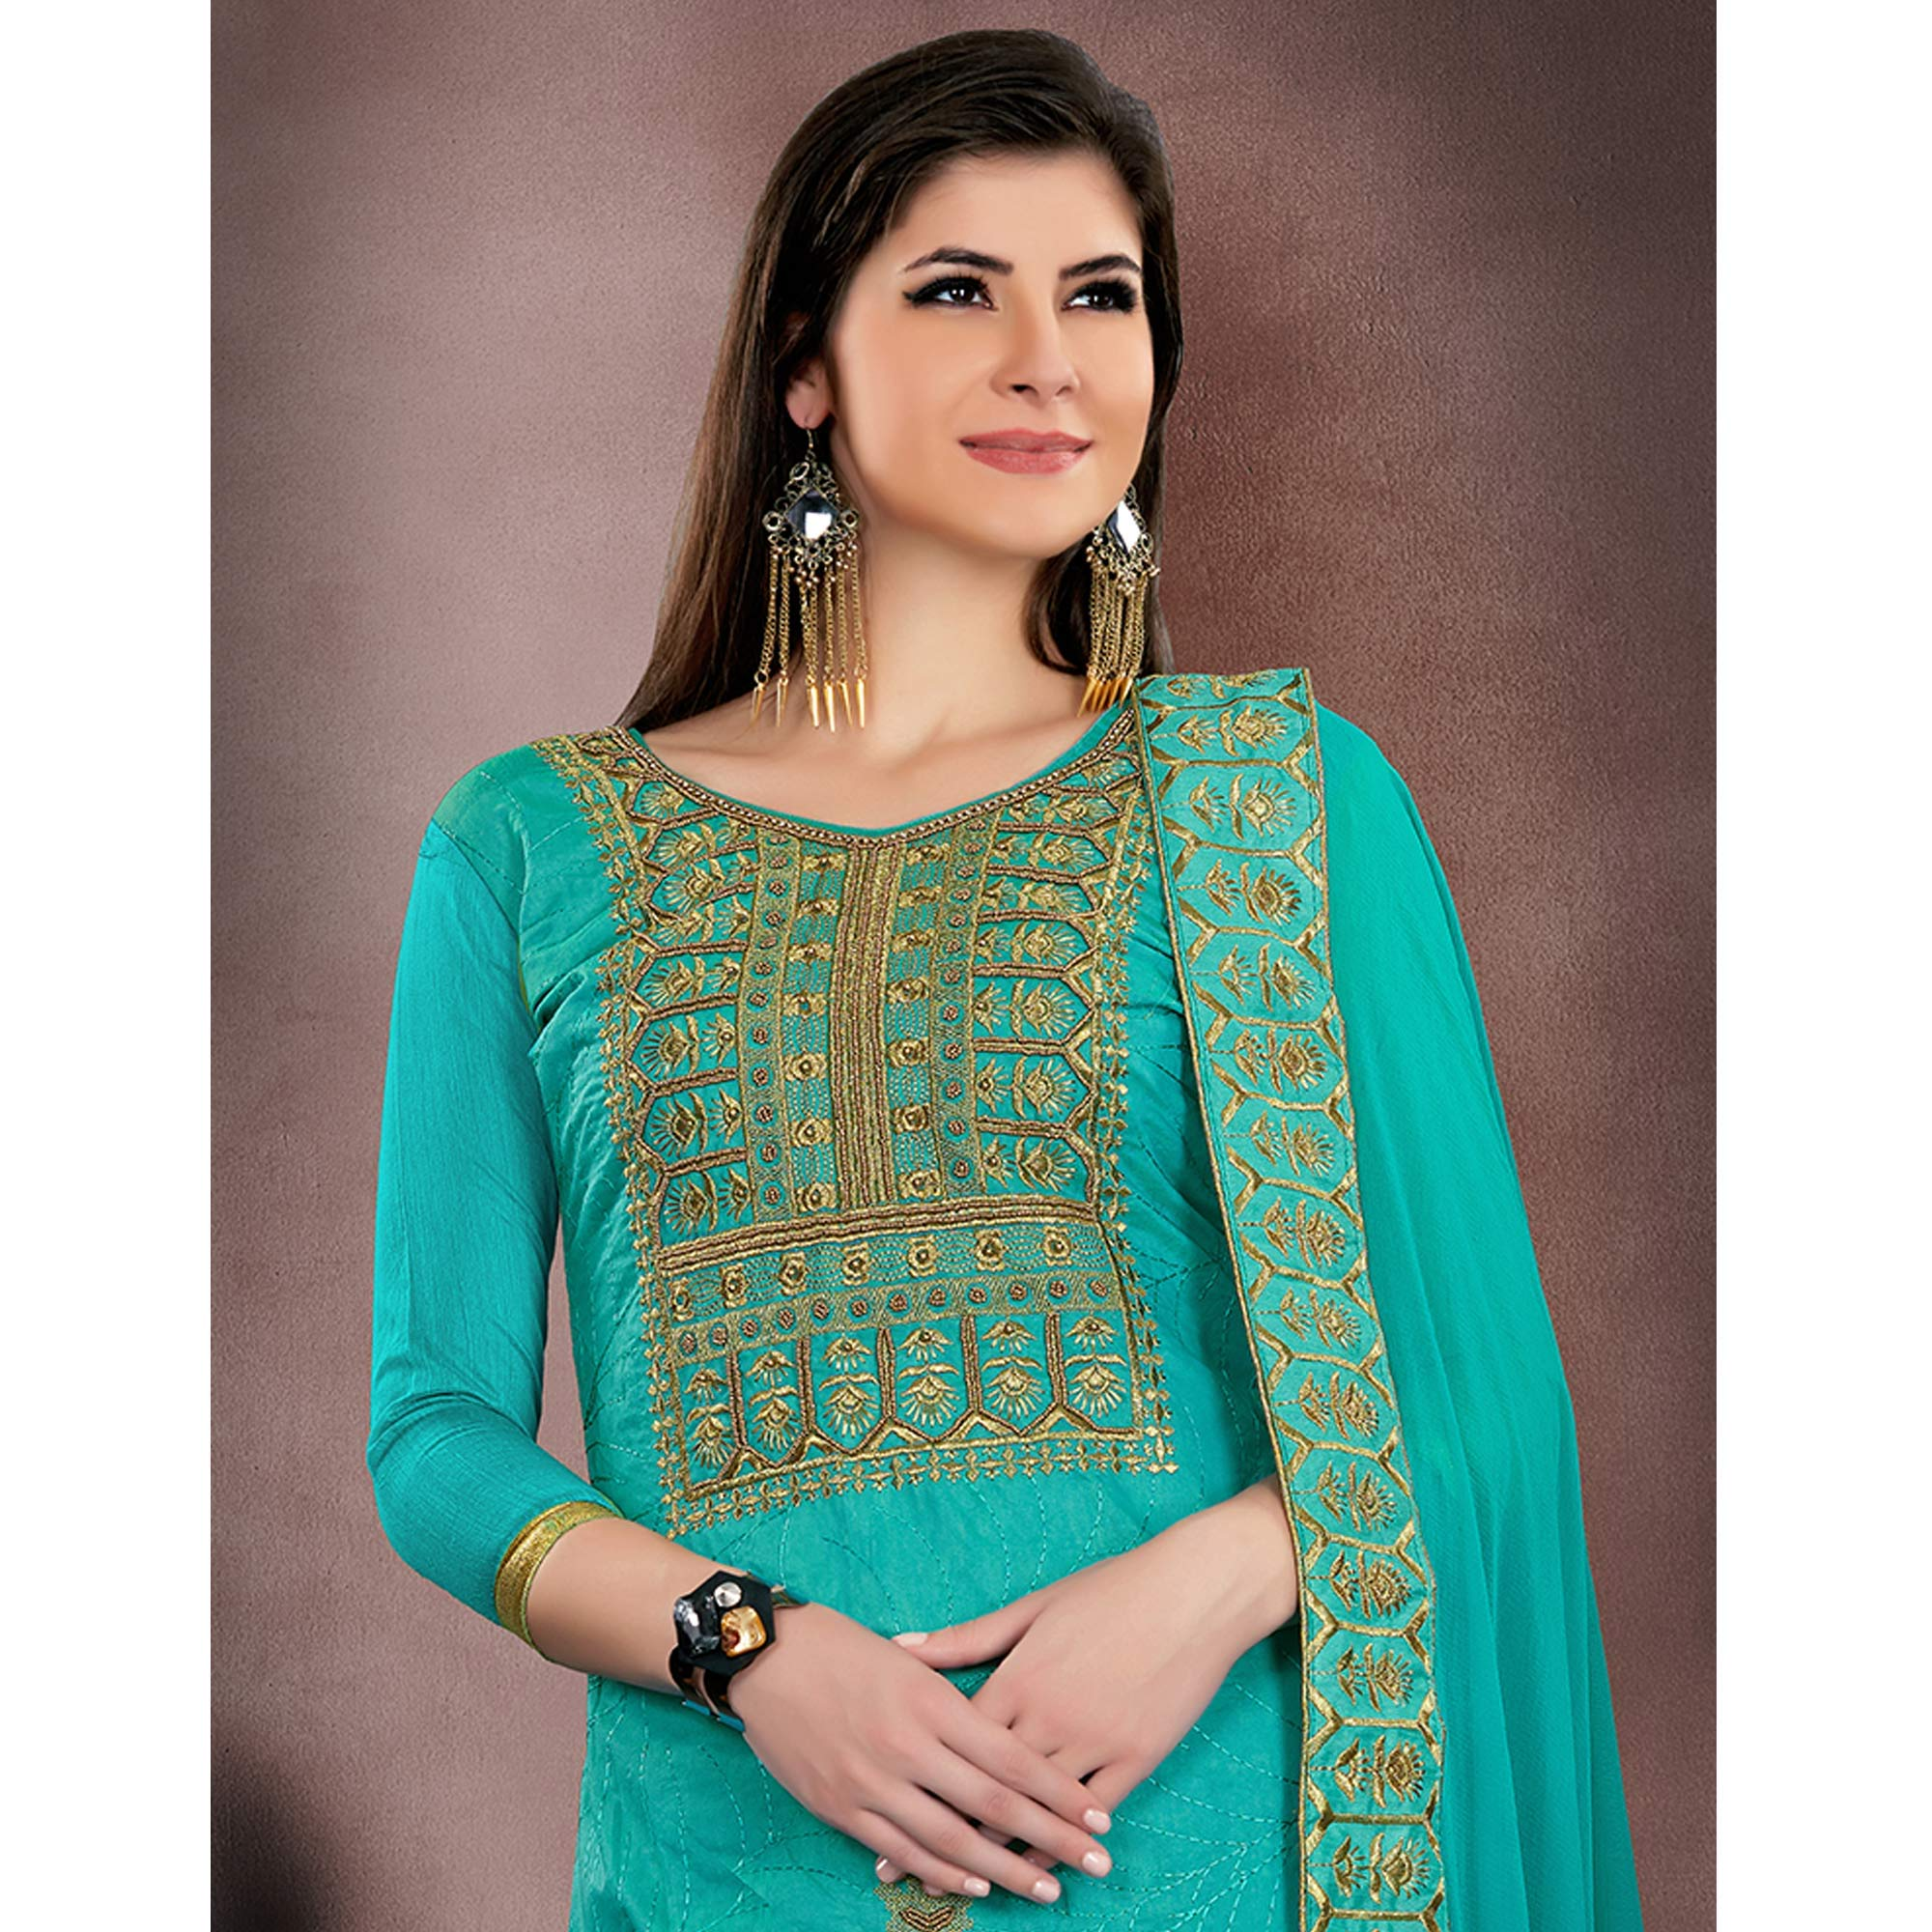 Preferable Turquoise Blue Colored Party Wear Embroidered Modal Chanderi Dress Material